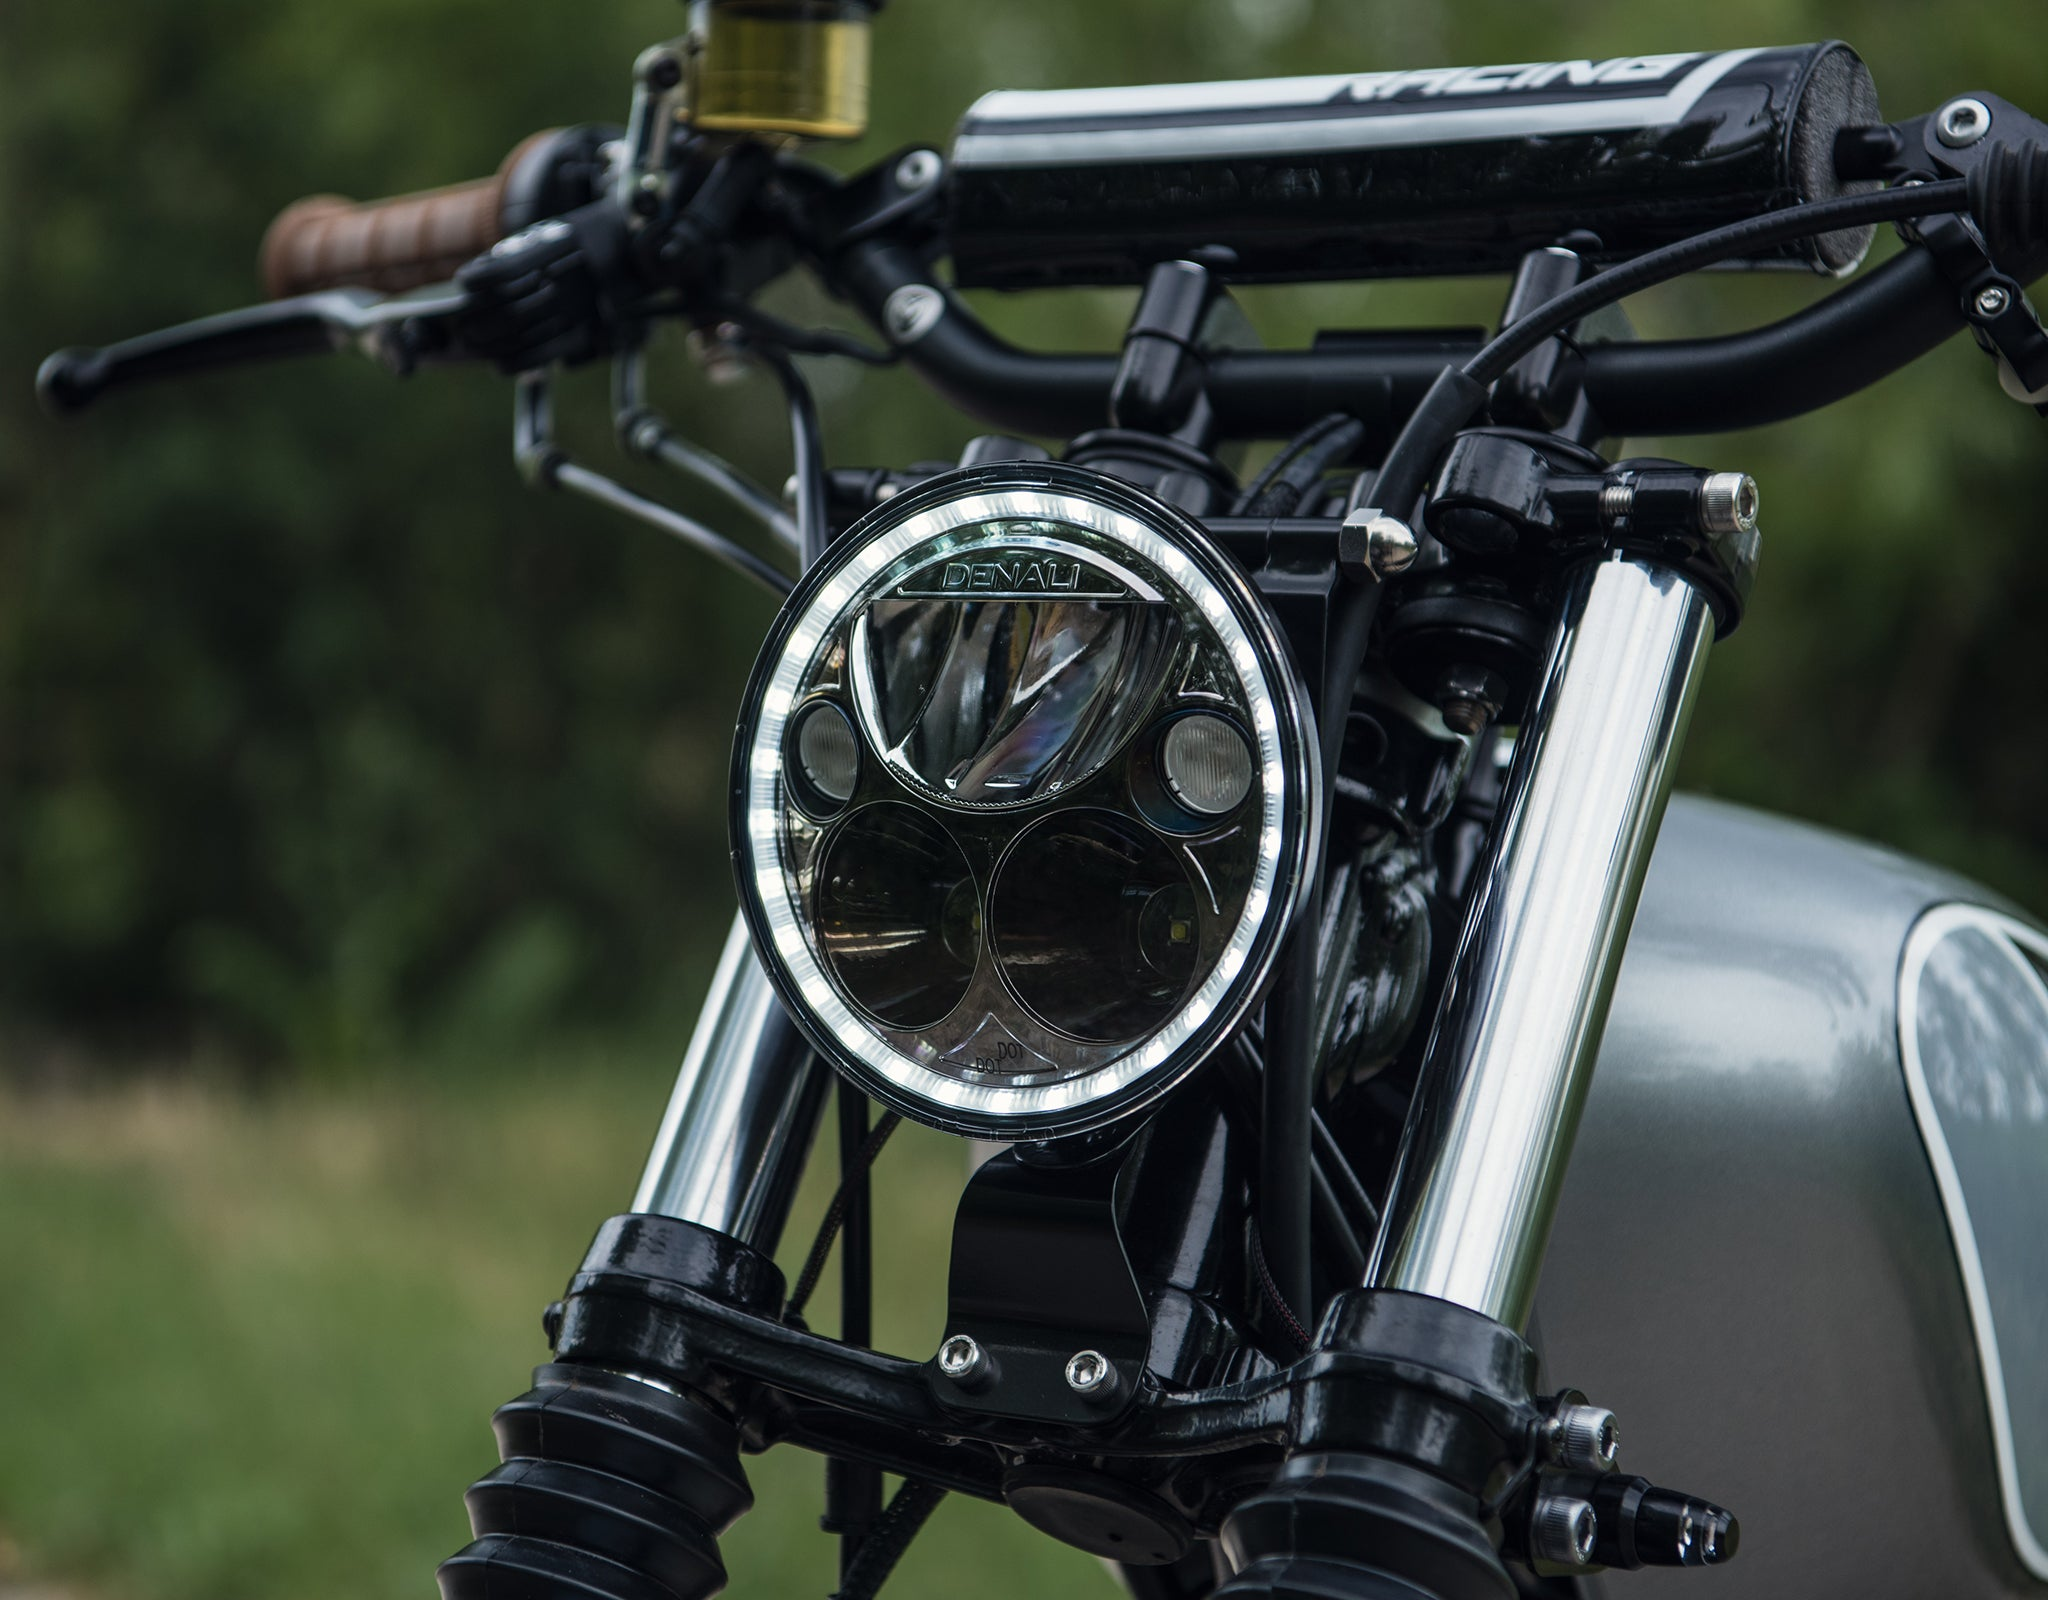 DENALI M5 DOT LED Headlight